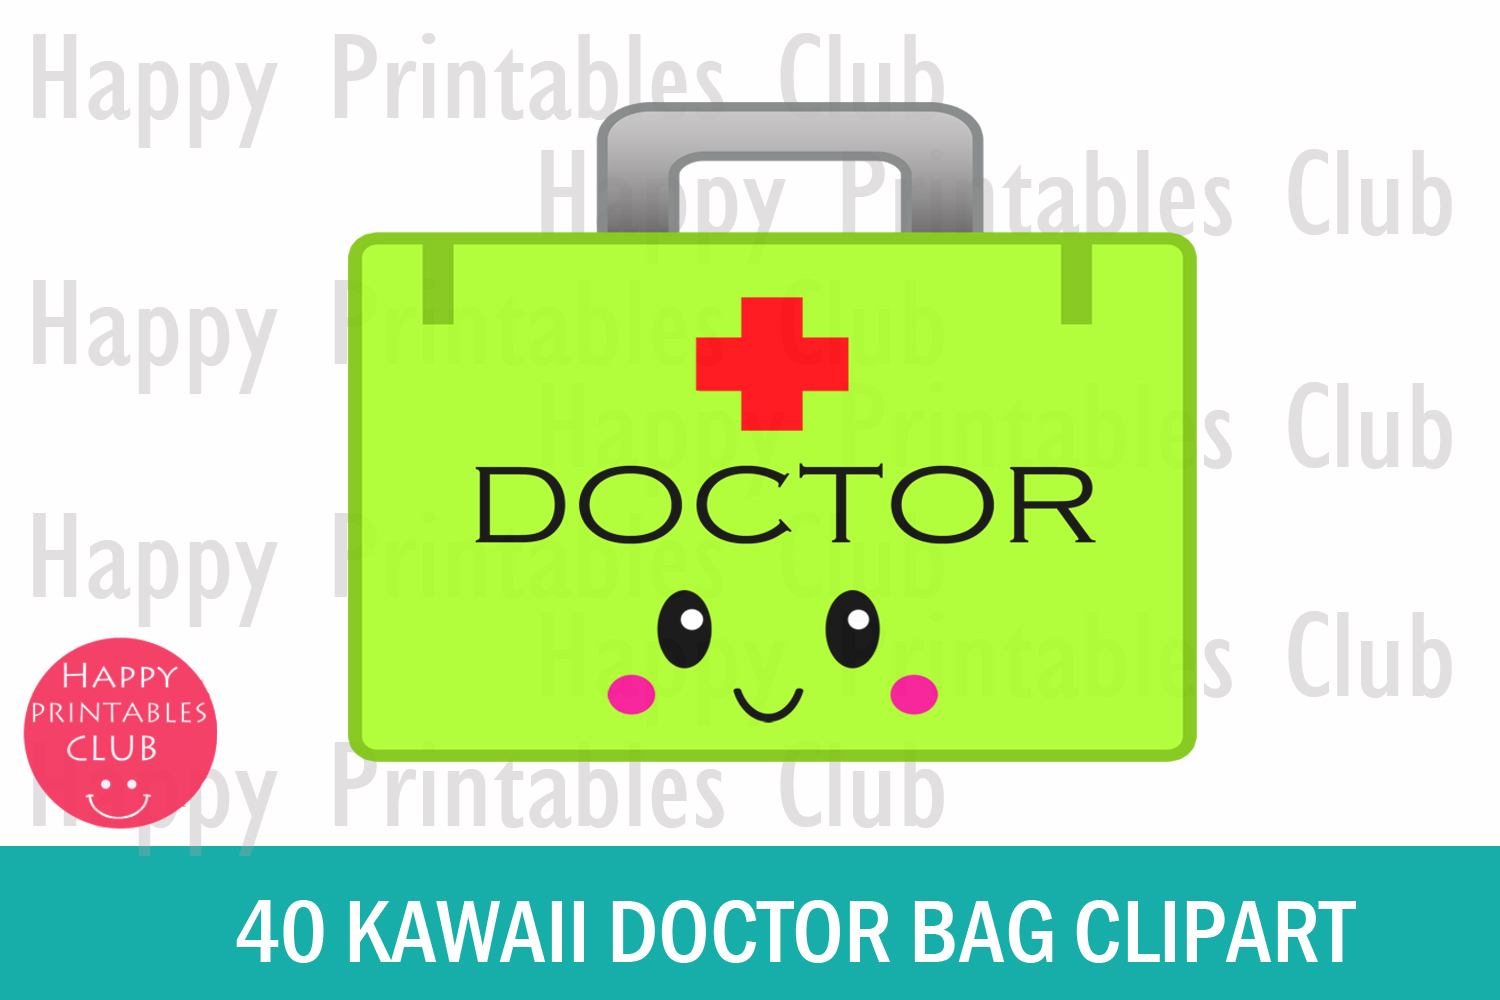 40 Kawaii Doctor Bag Clipart- Doctor Bag Transparent Images example image 2